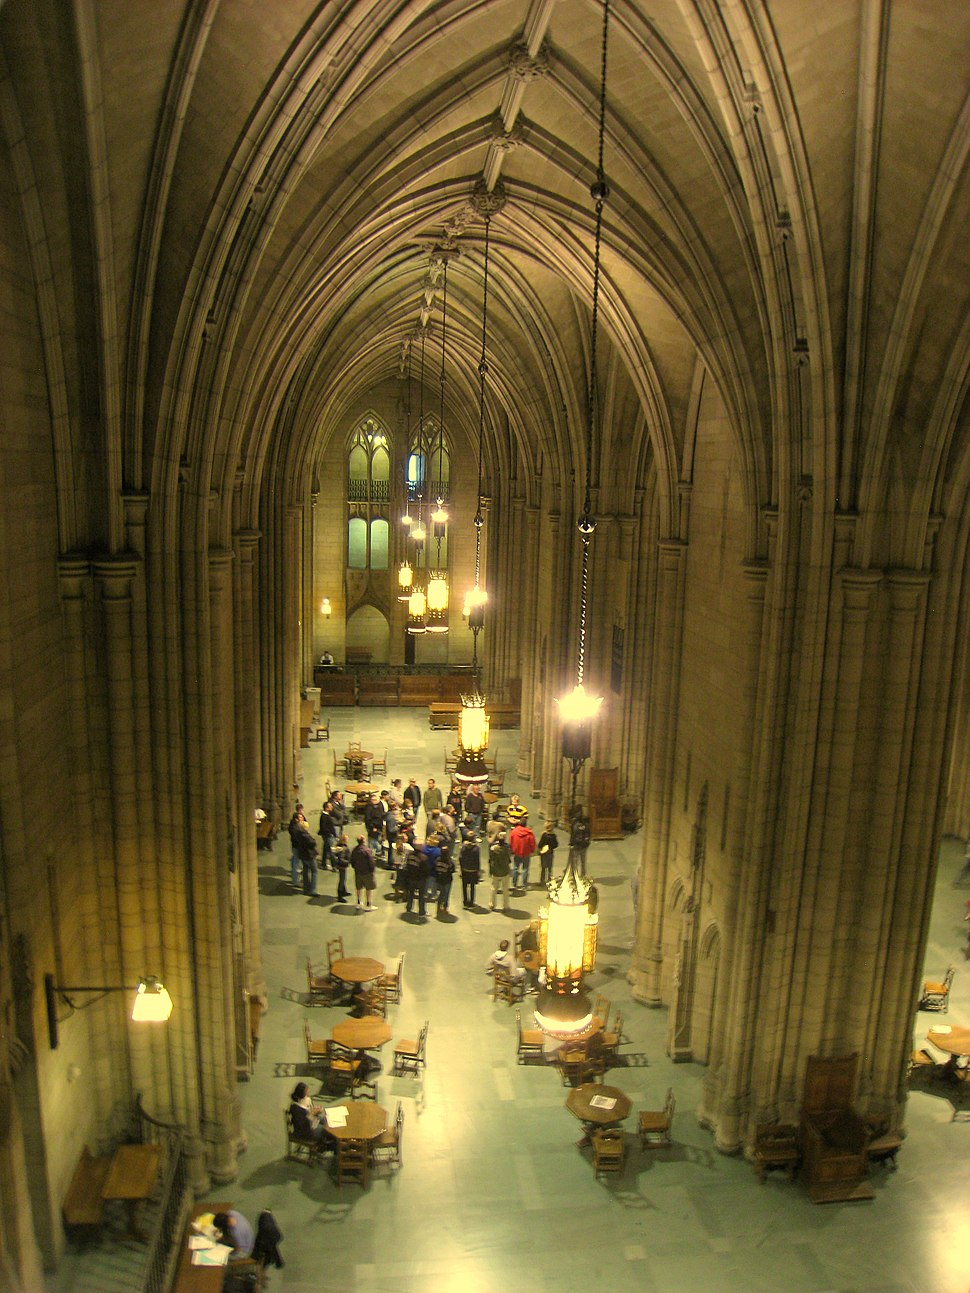 Commons Room (Cathedral of Learning) - Pitt - IMG 0573